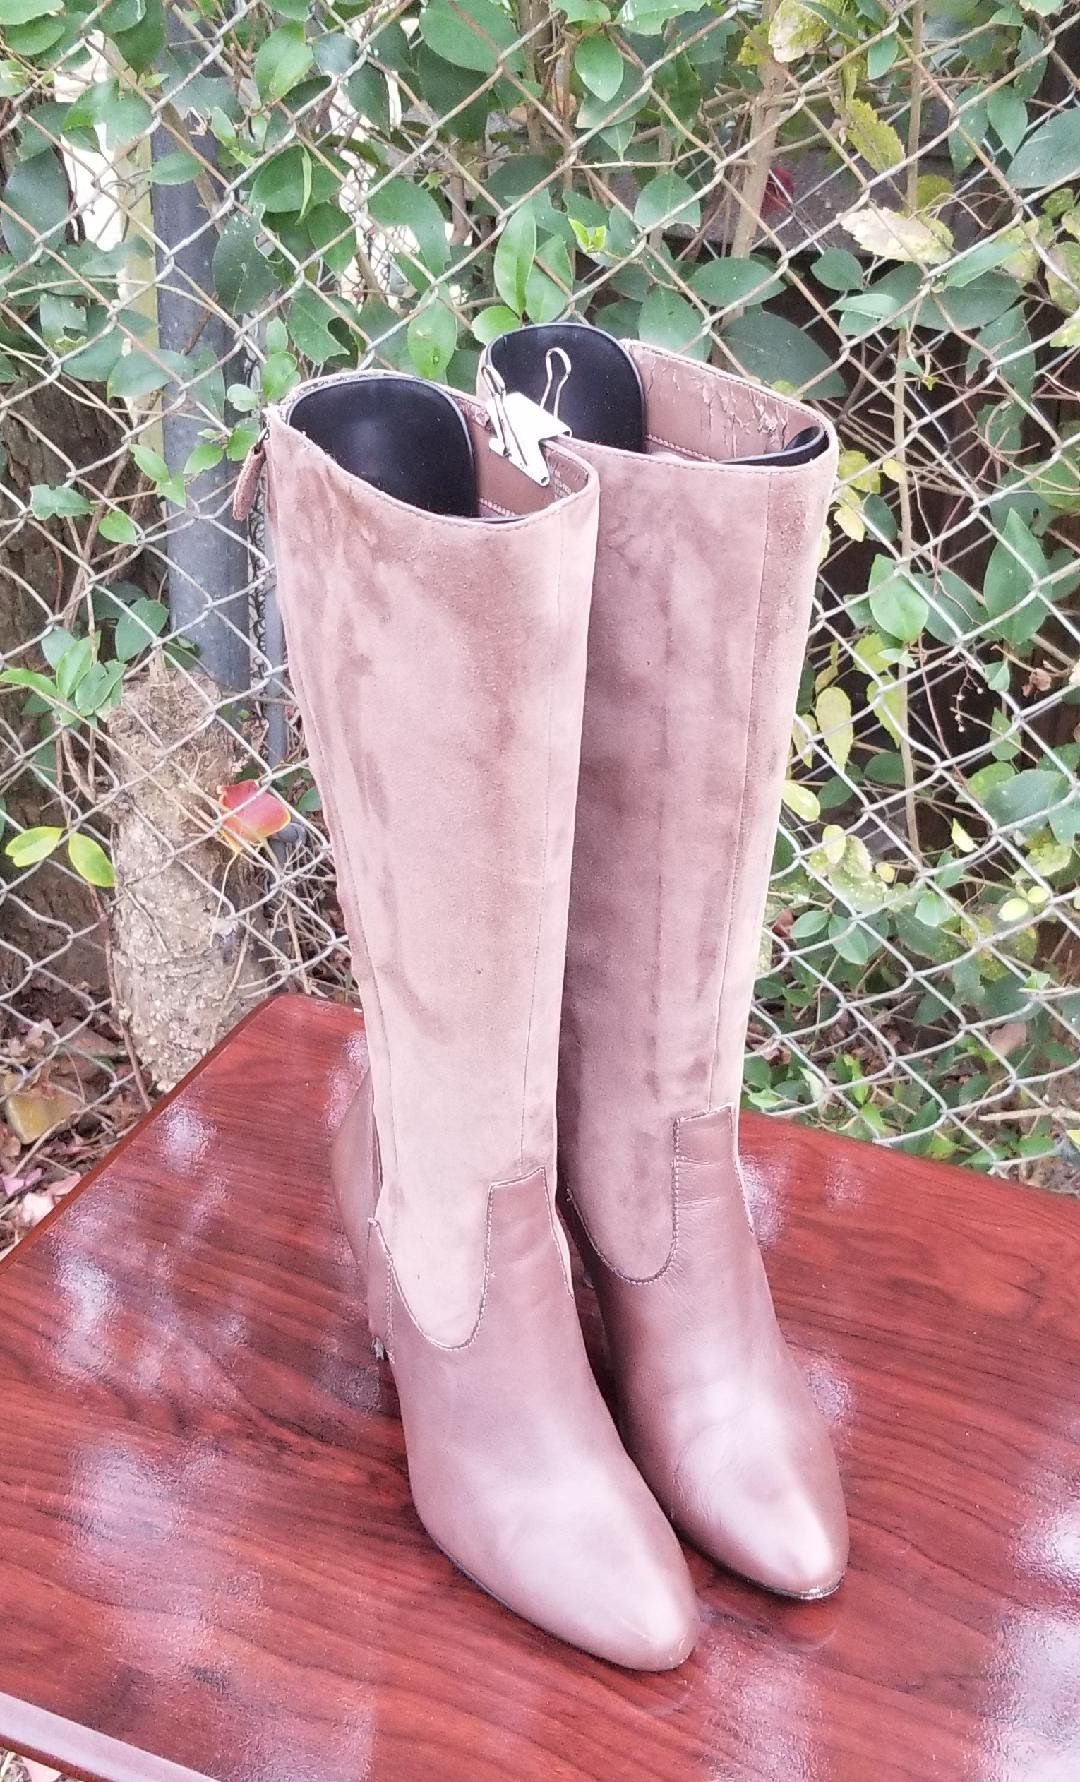 a50236b5cd9a9 S.z. 7 M Brown Leather/Suede Tall Riding Boots/Vintage 90's By ...